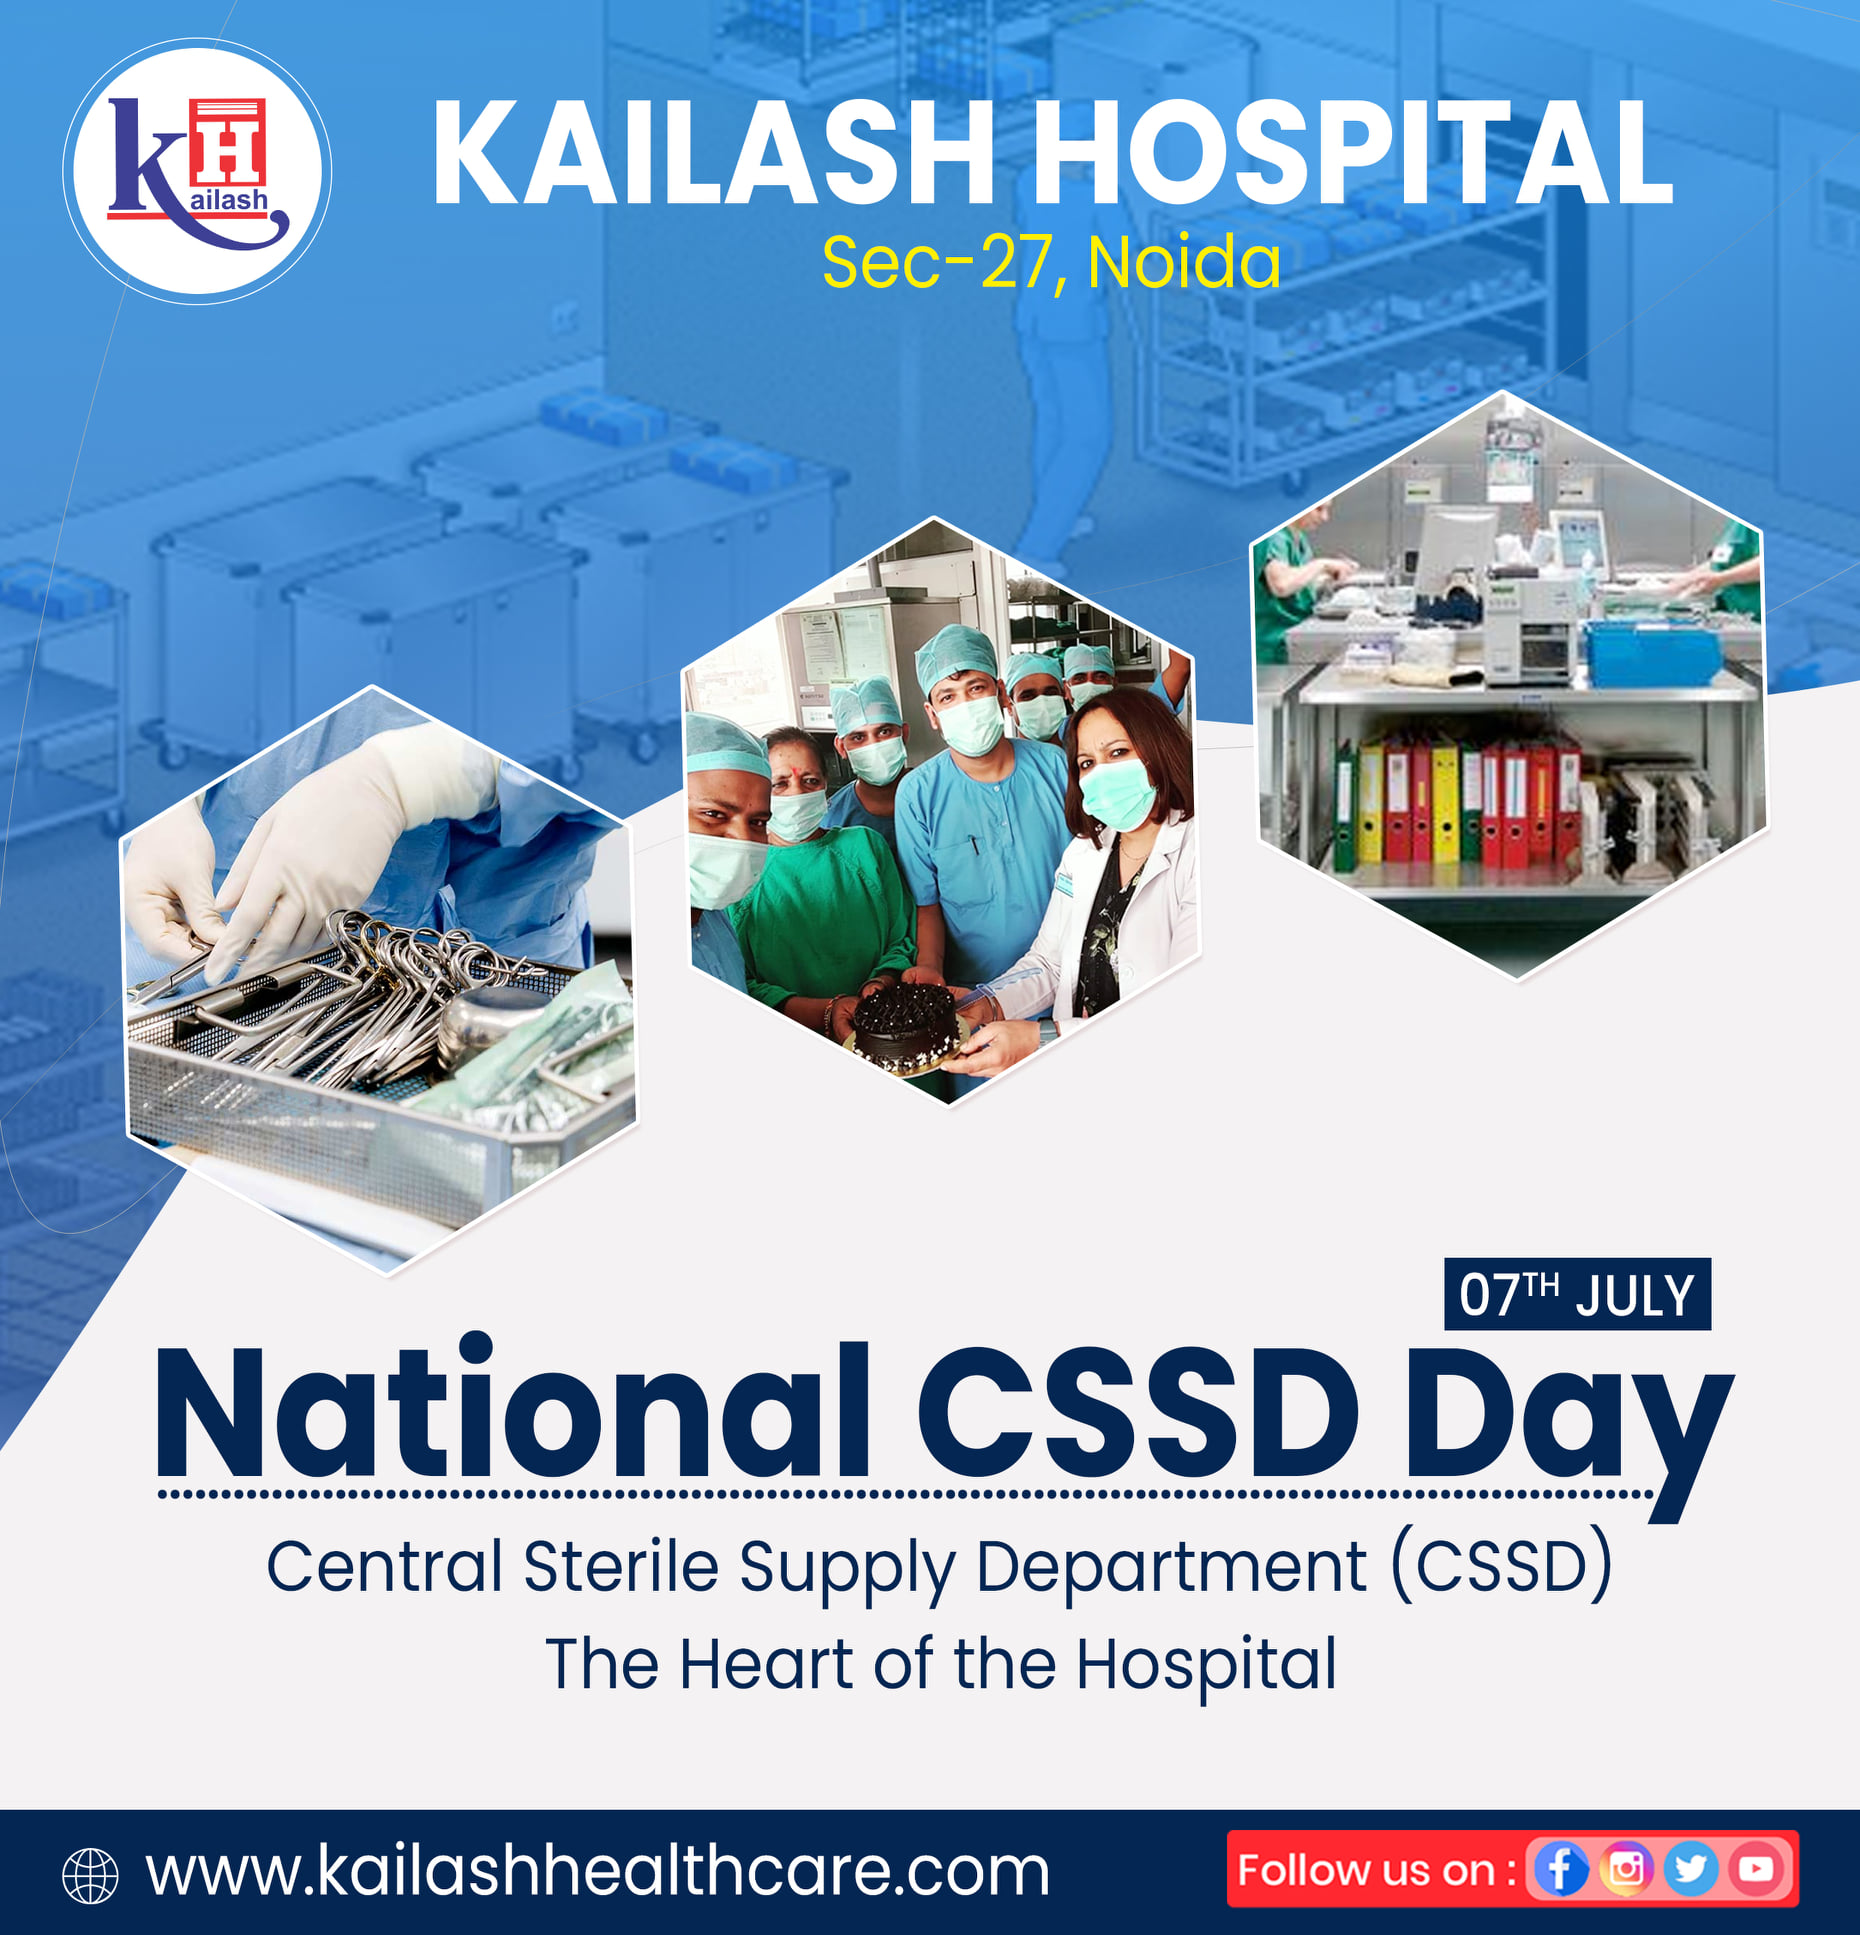 The CSSD plays a key role in providing the items required to deliver quality patient care & support infection control within the healthcare facility.